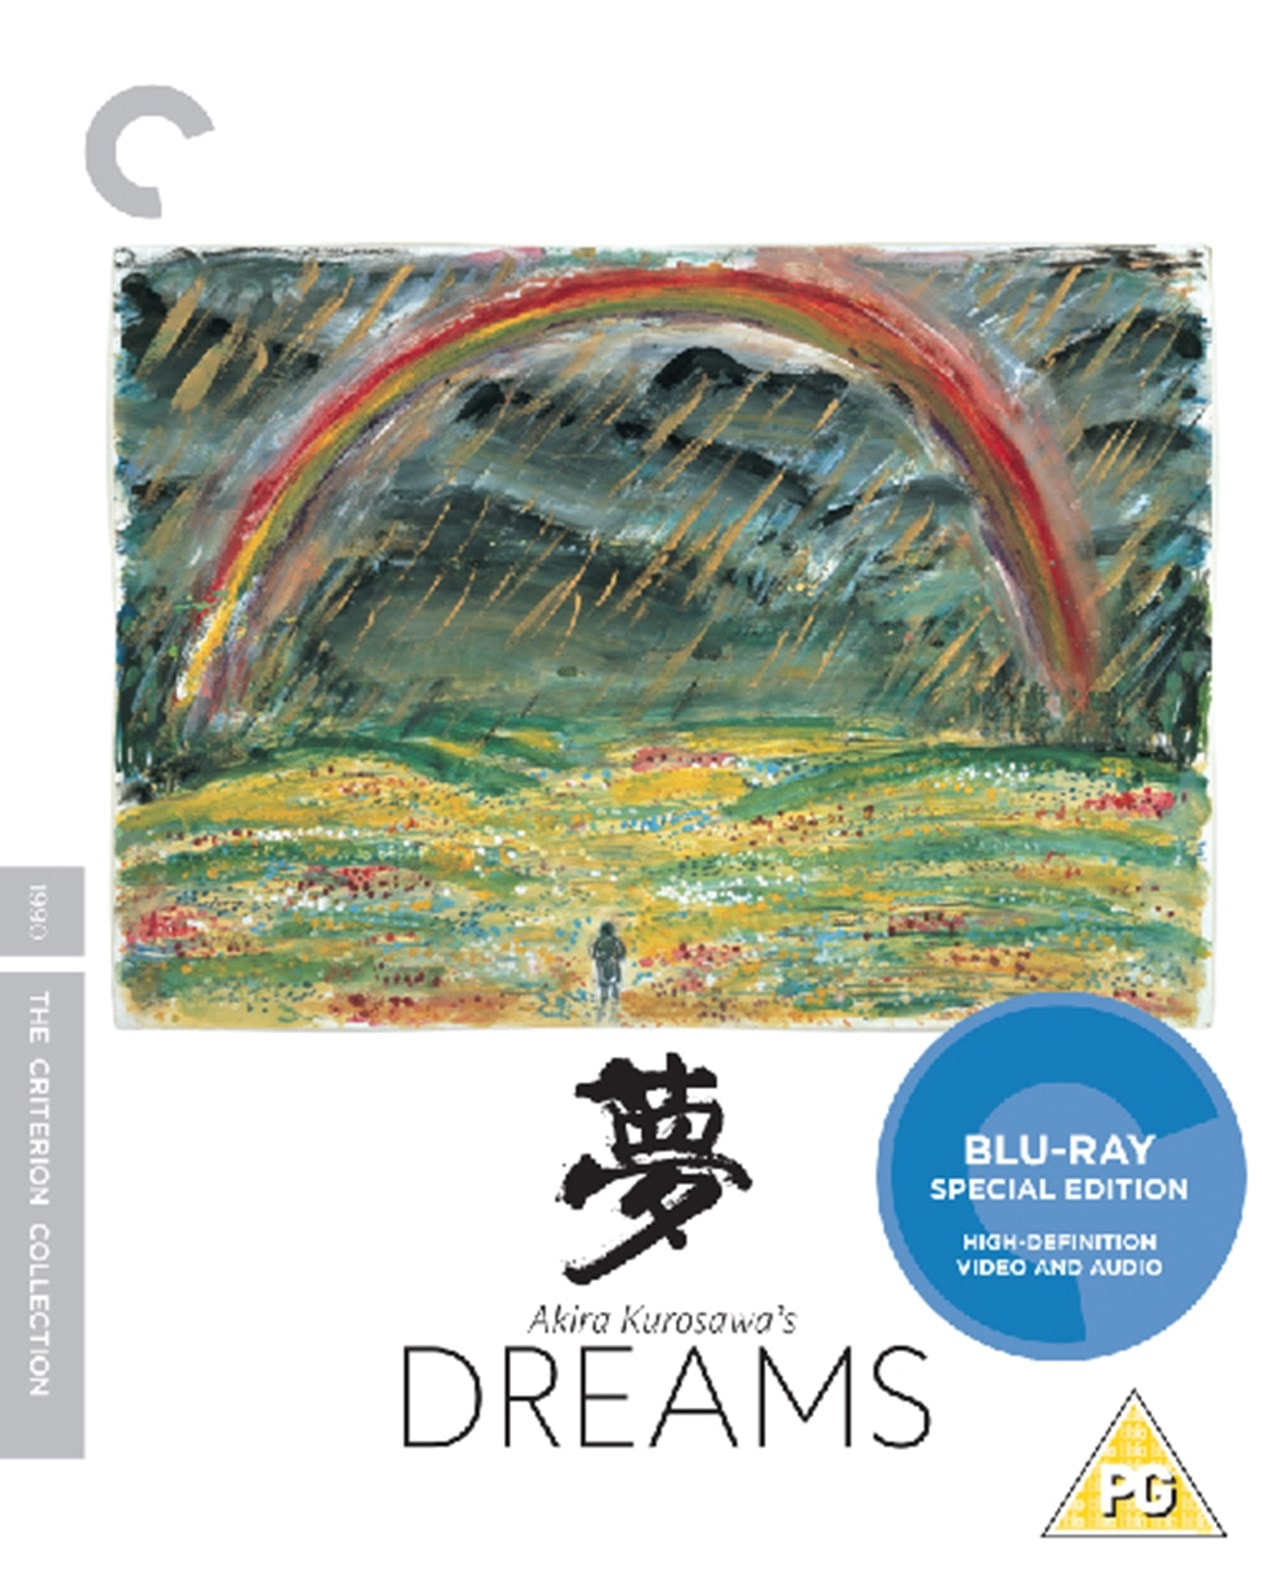 Akira Kurosawa's Dreams - The Criterion Collection - 1